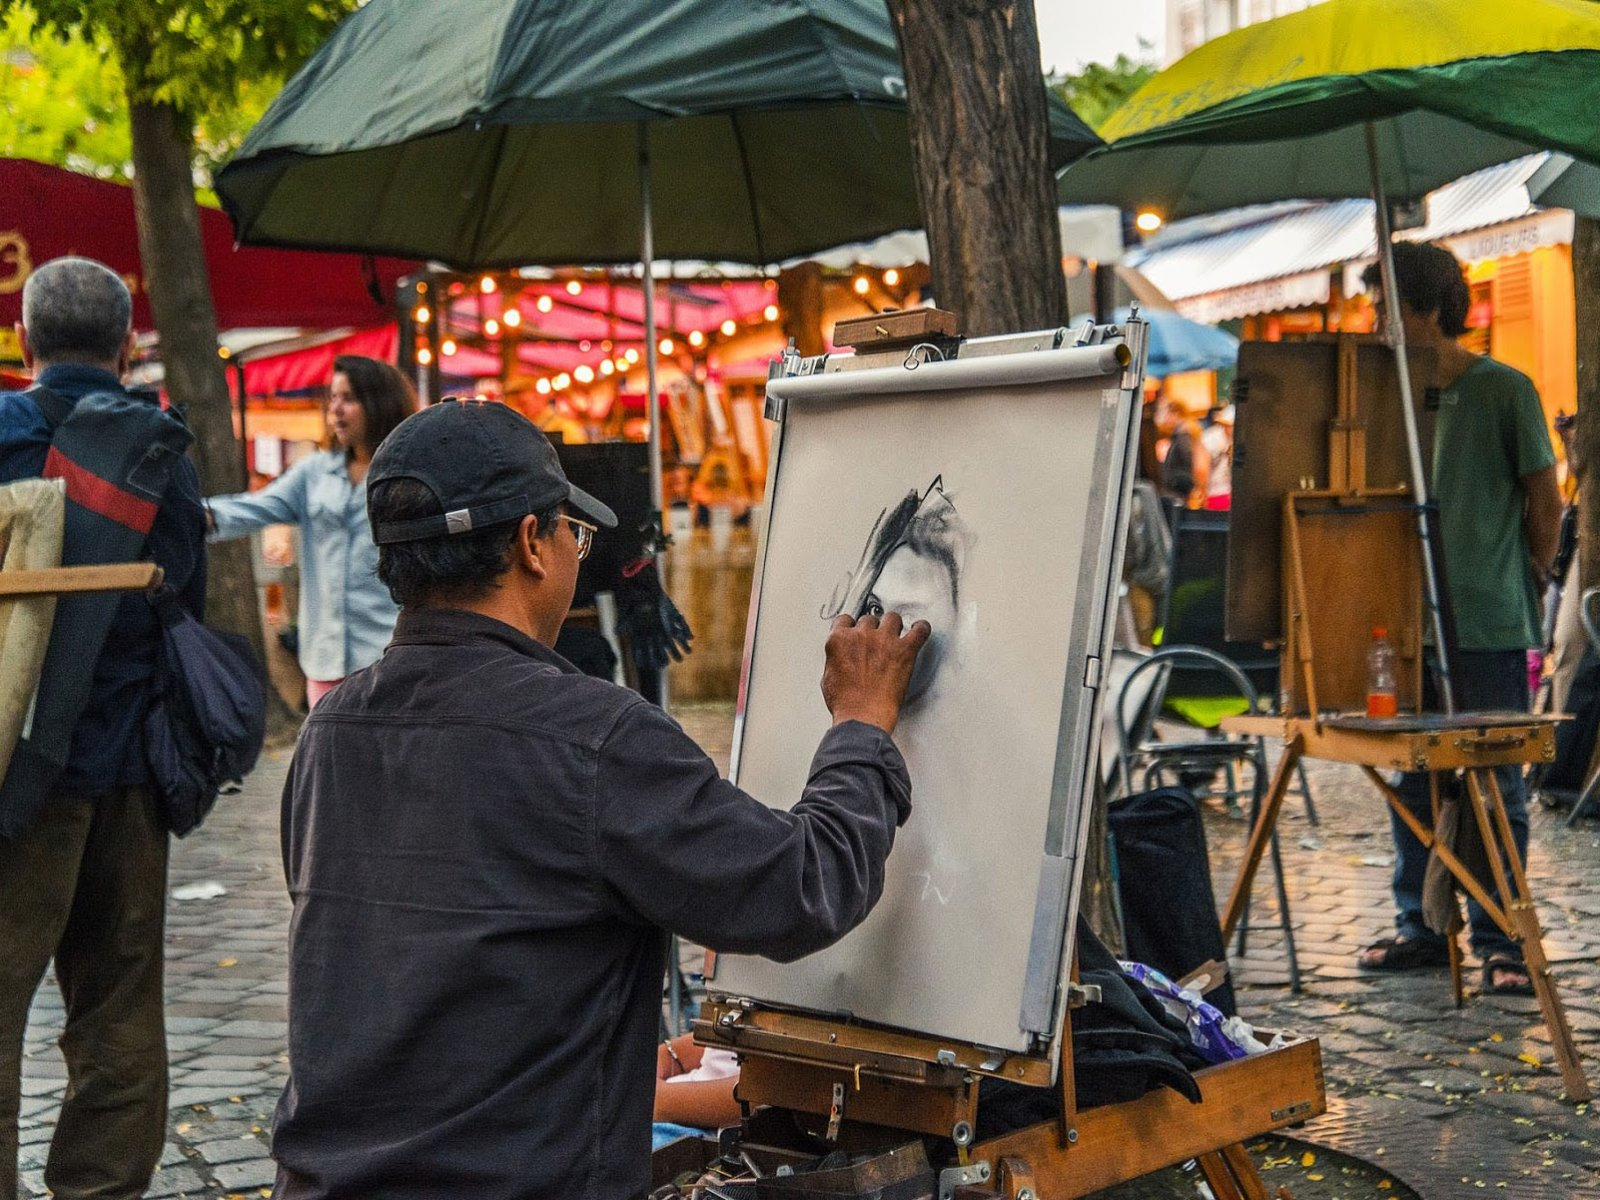 How to buy a painting on Tertre Square in Paris